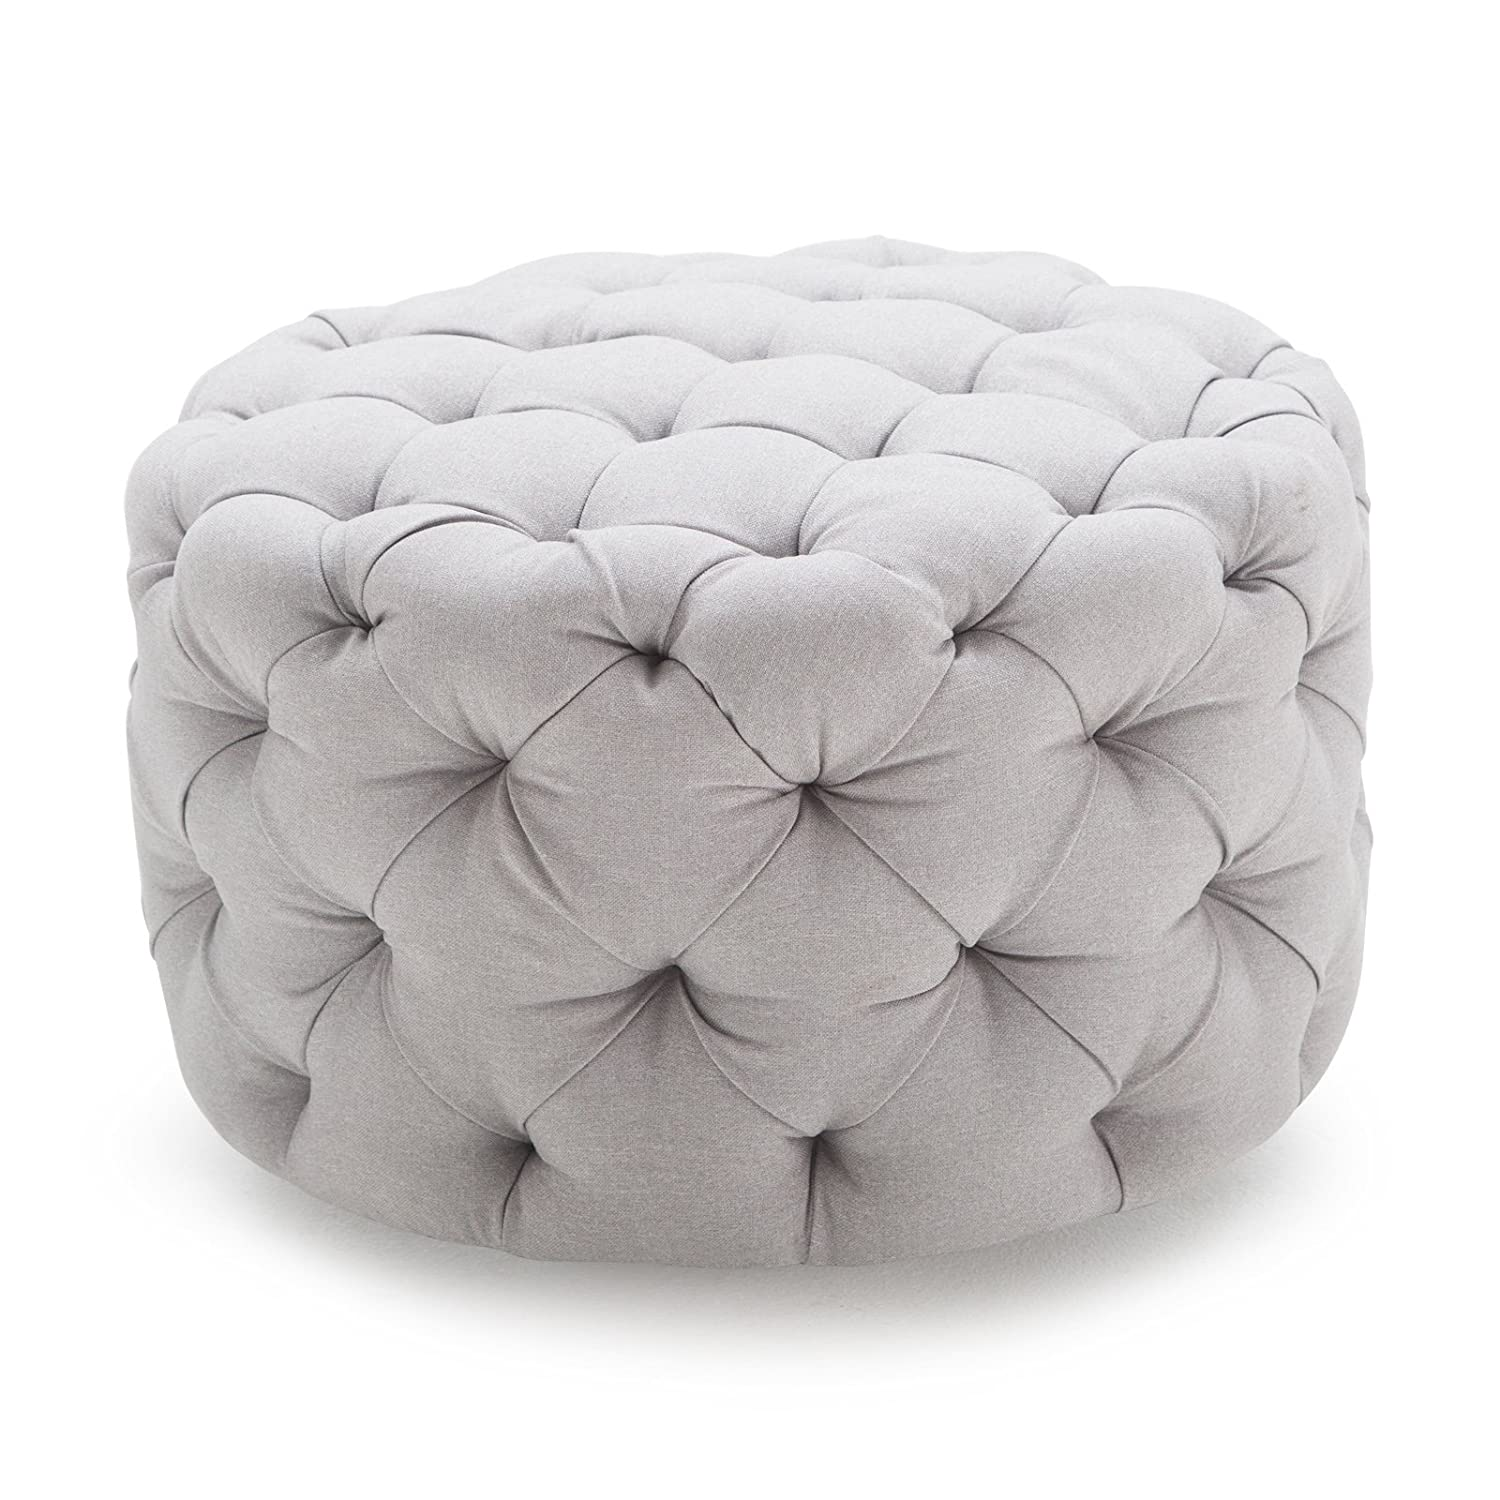 Amazon.com Belham Living Allover Round Tufted Ottoman - Grey Kitchen u0026 Dining  sc 1 st  Amazon.com & Amazon.com: Belham Living Allover Round Tufted Ottoman - Grey ... islam-shia.org